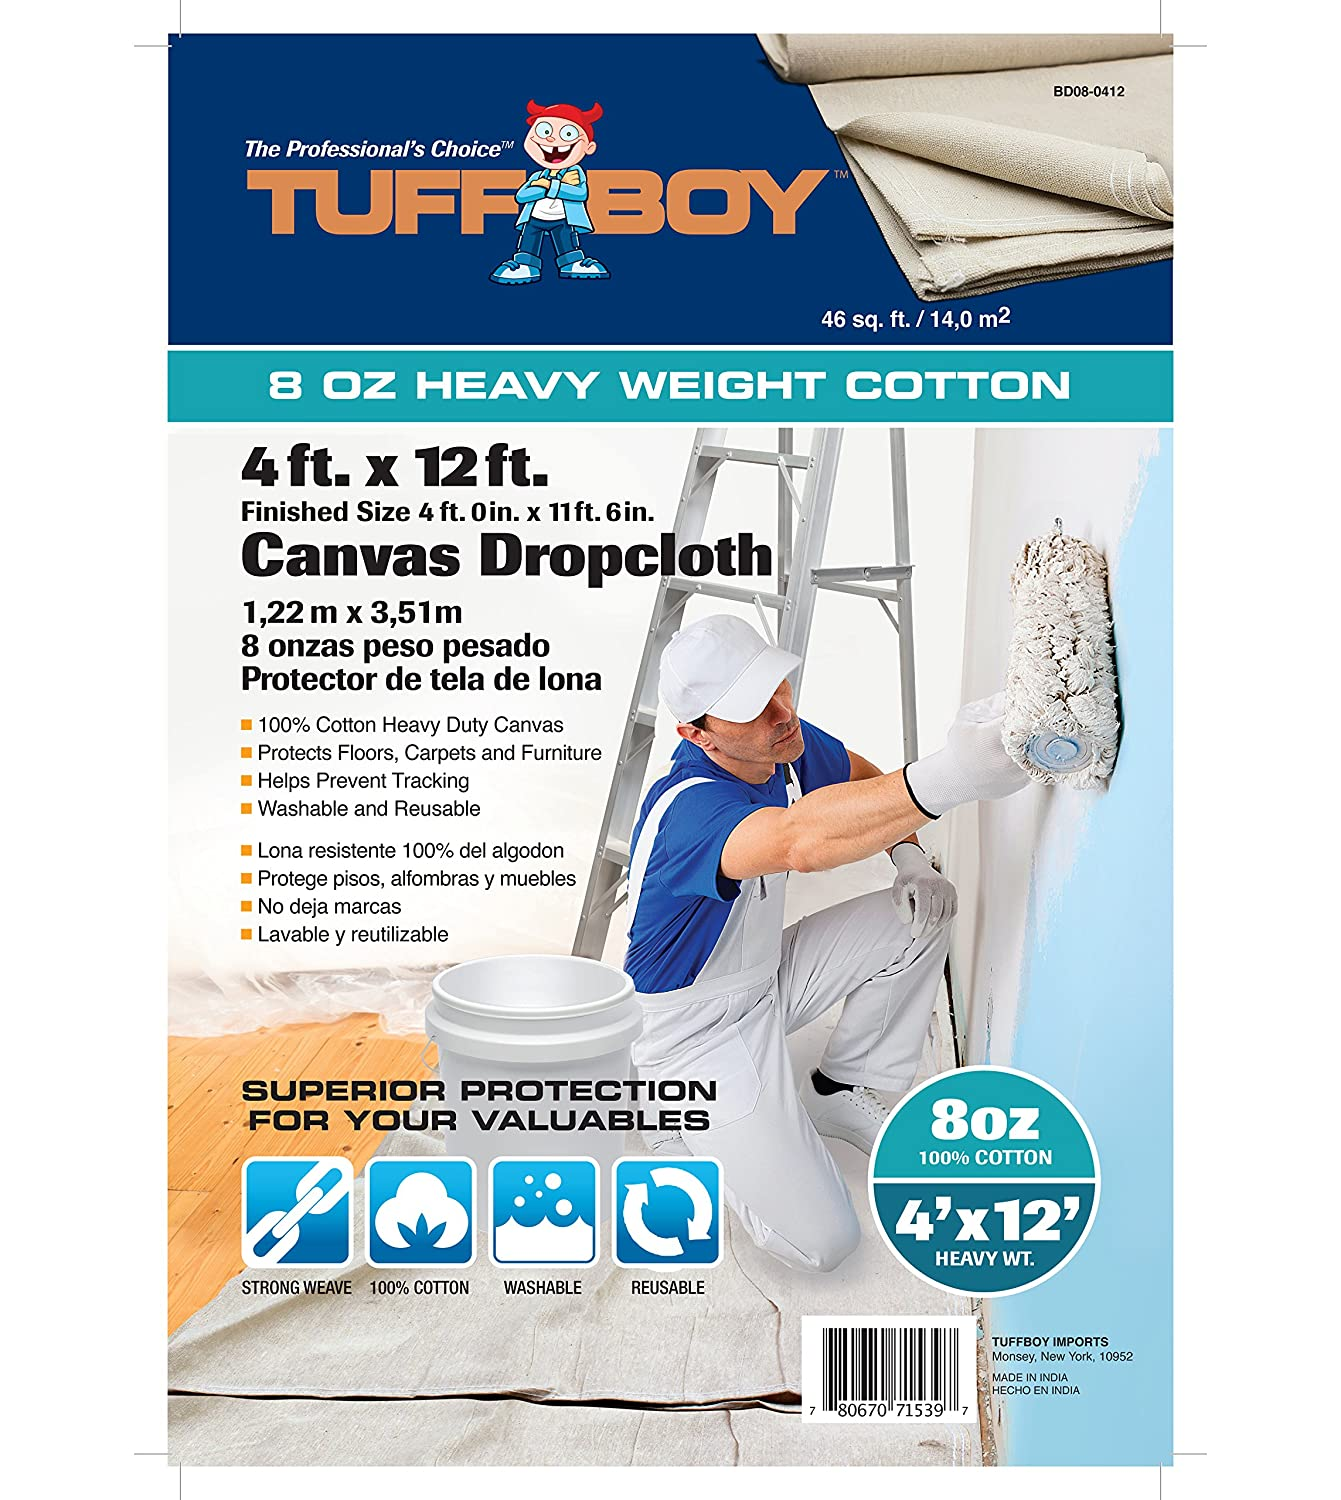 Tuff Boy Cotton Canvas Drop Cloth, Seamless, 4 x 12 Feet, 8 oz